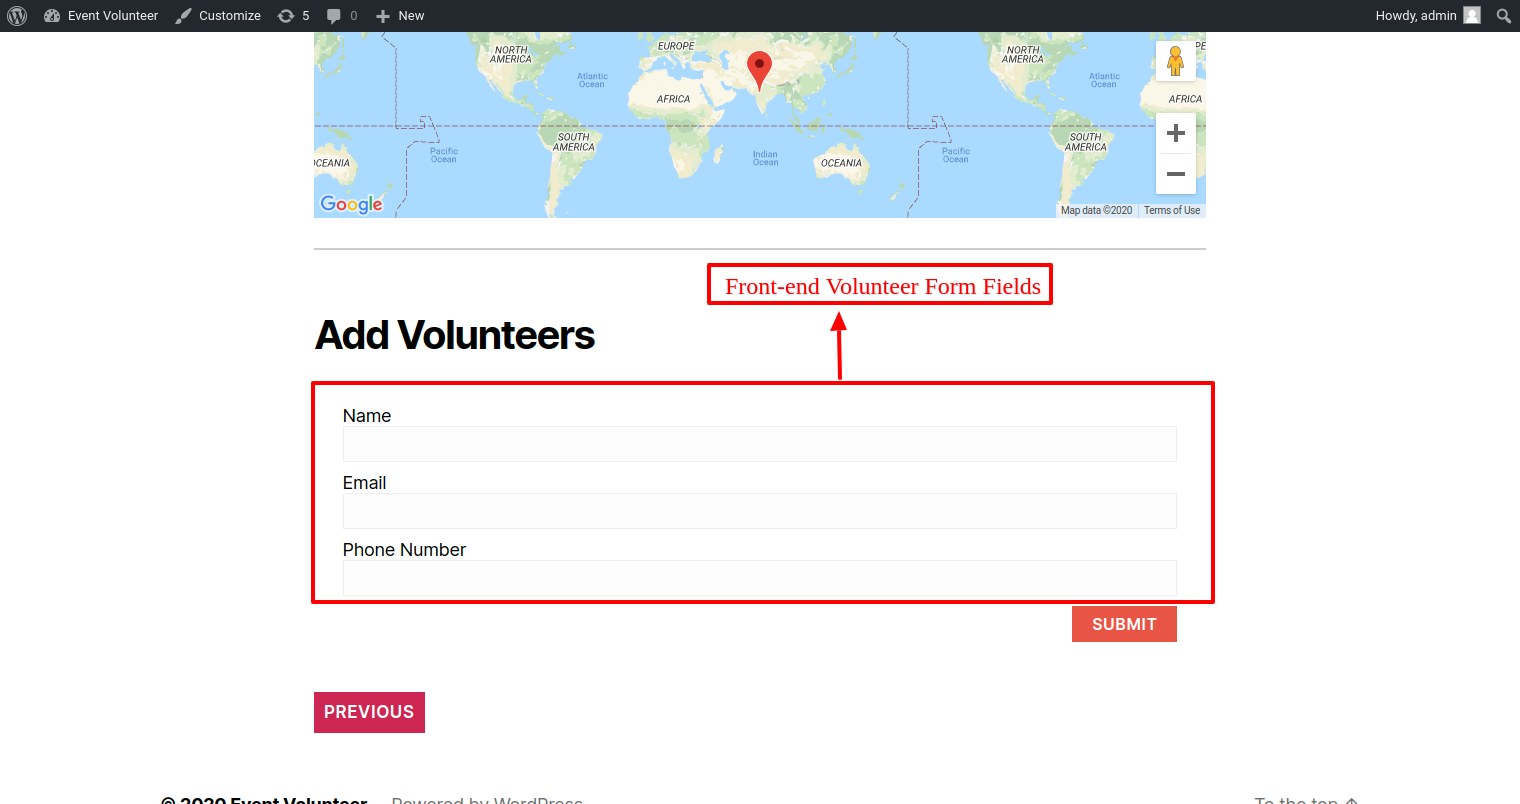 Display Volunteer Form in the front end